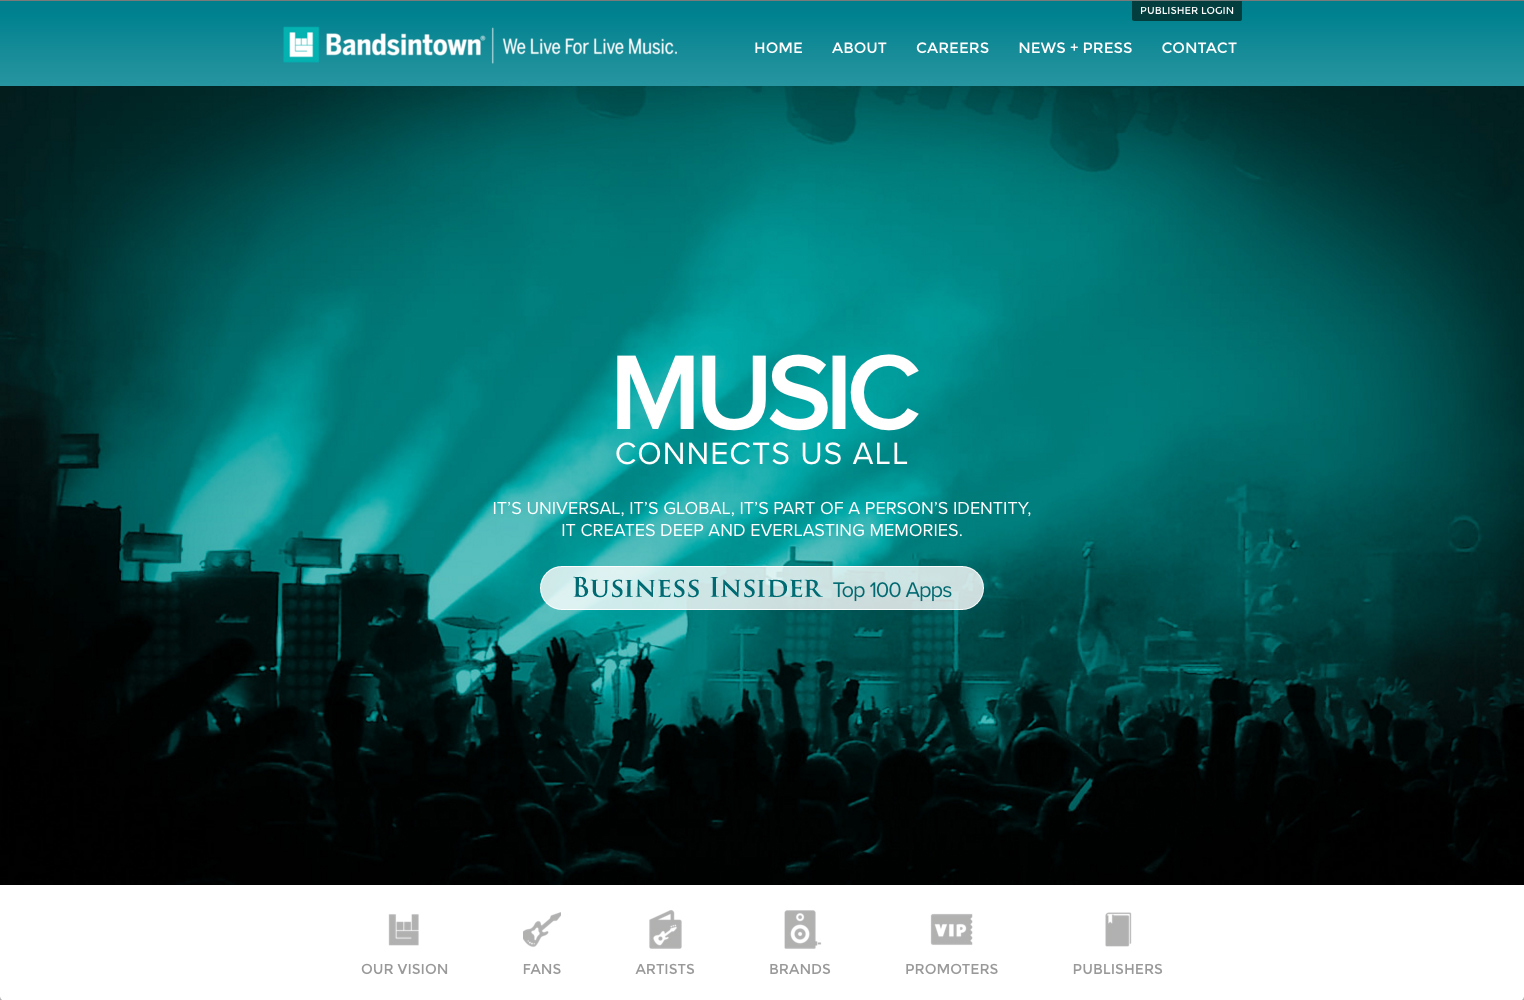 screenshot showing a live demo of Bandsintown site created using Squarespace